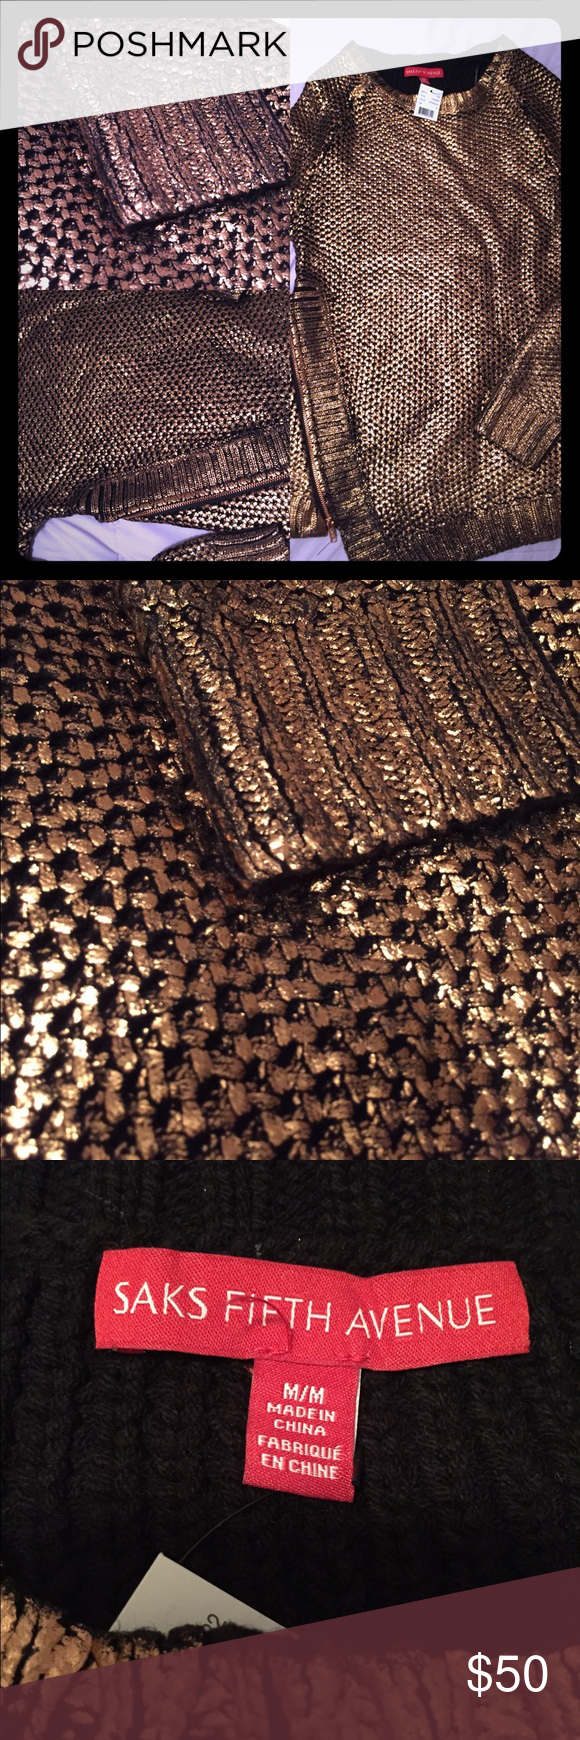 Saks Metallic Foil Copper Knit Sweater Cool edgy sweater will spice up any wardrobe! Looks GREAT with a simple pair of black leggings and boots but really stands out. Zipper embellishment. Super comfortable. Never worn Saks Fifth Avenue Sweaters